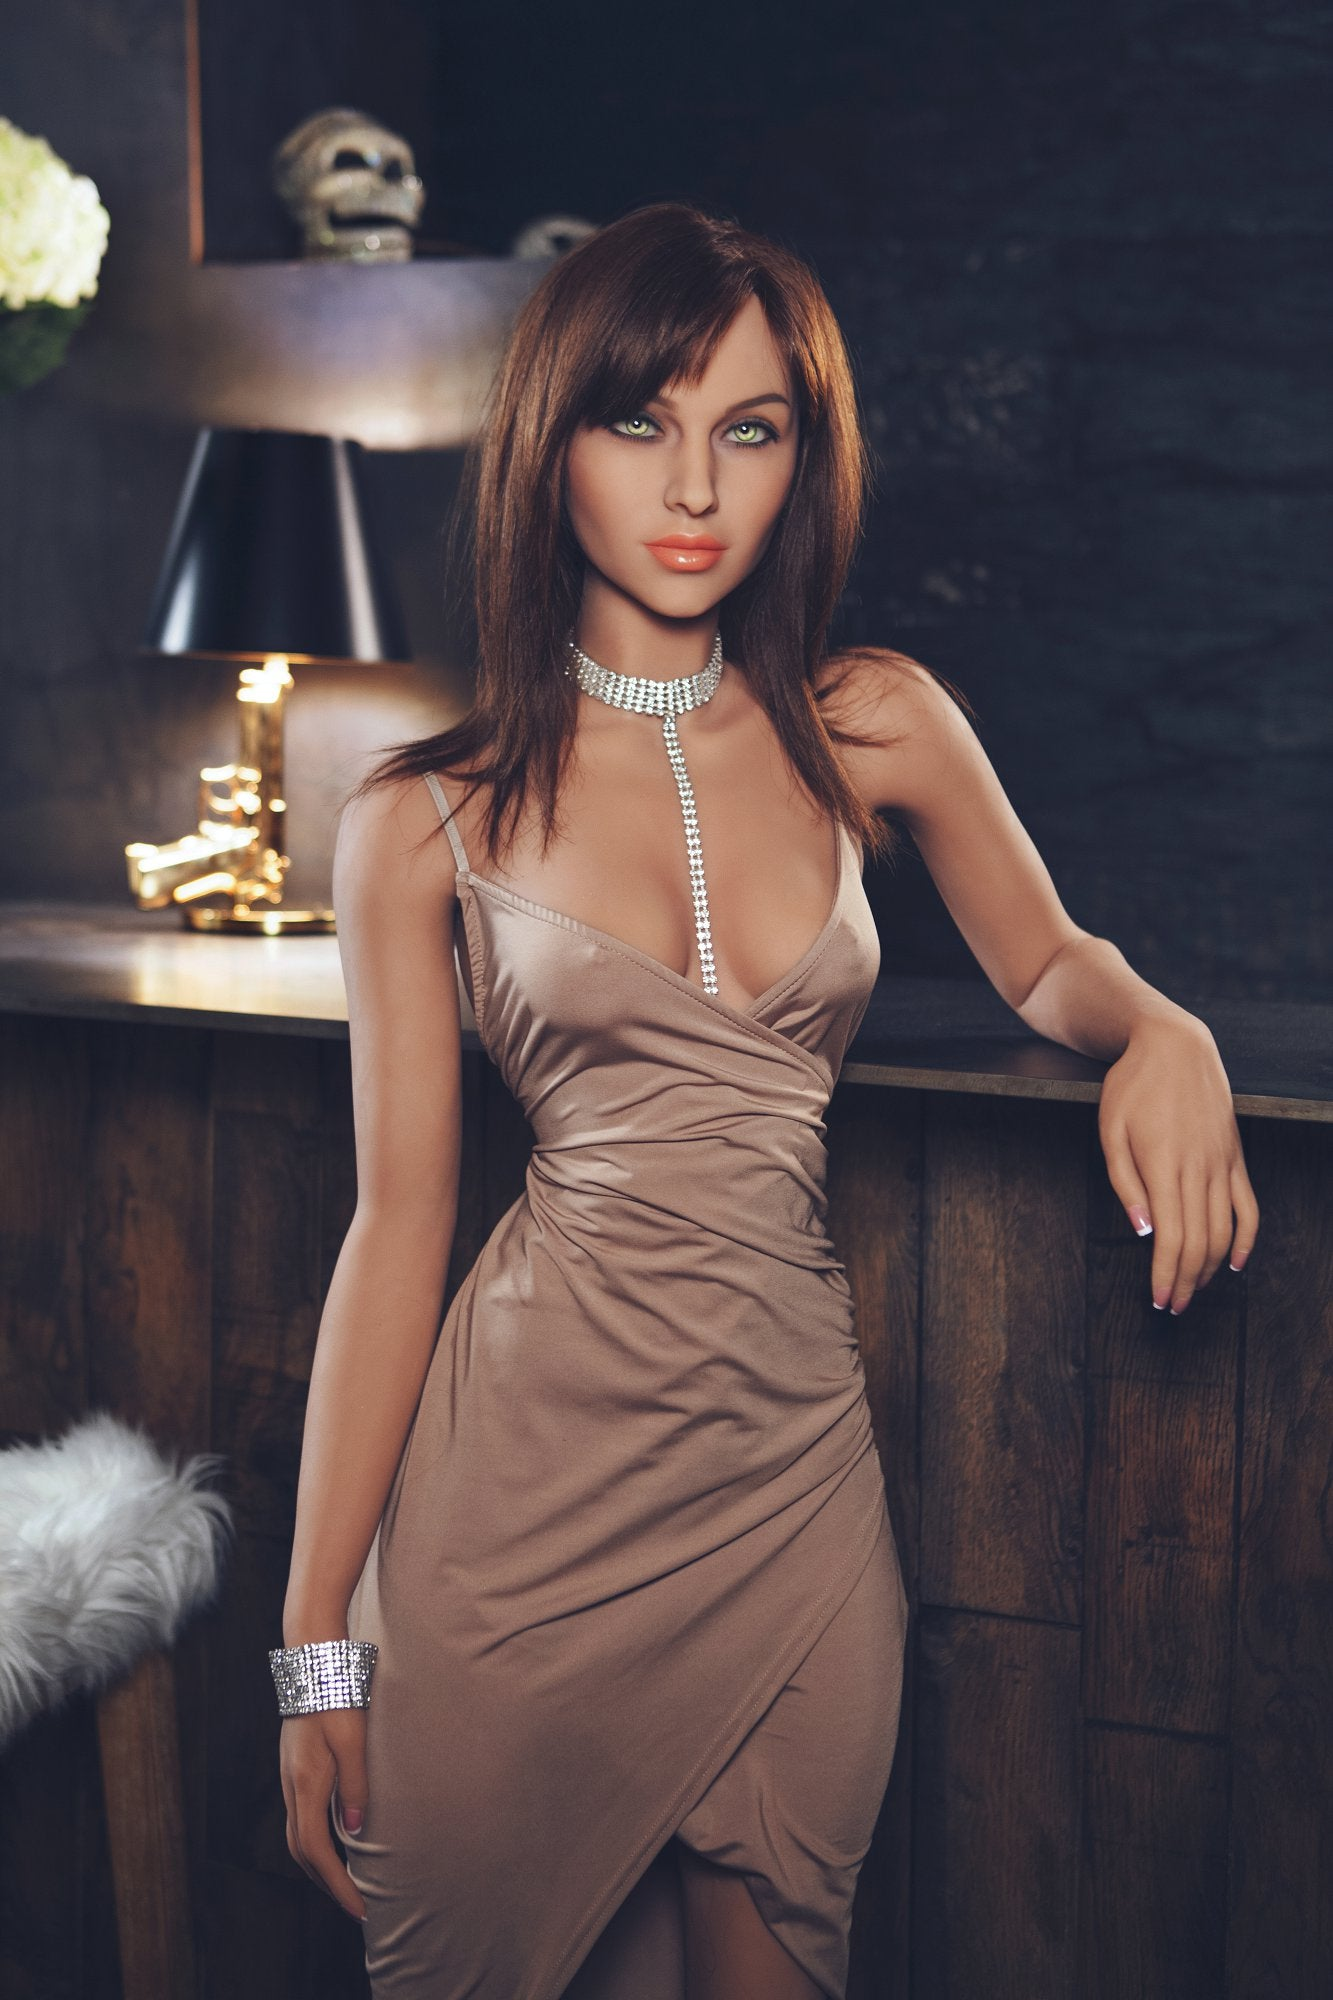 summer 162cm brown hair skinny flat chested tan skin tpe yl sex doll(13)